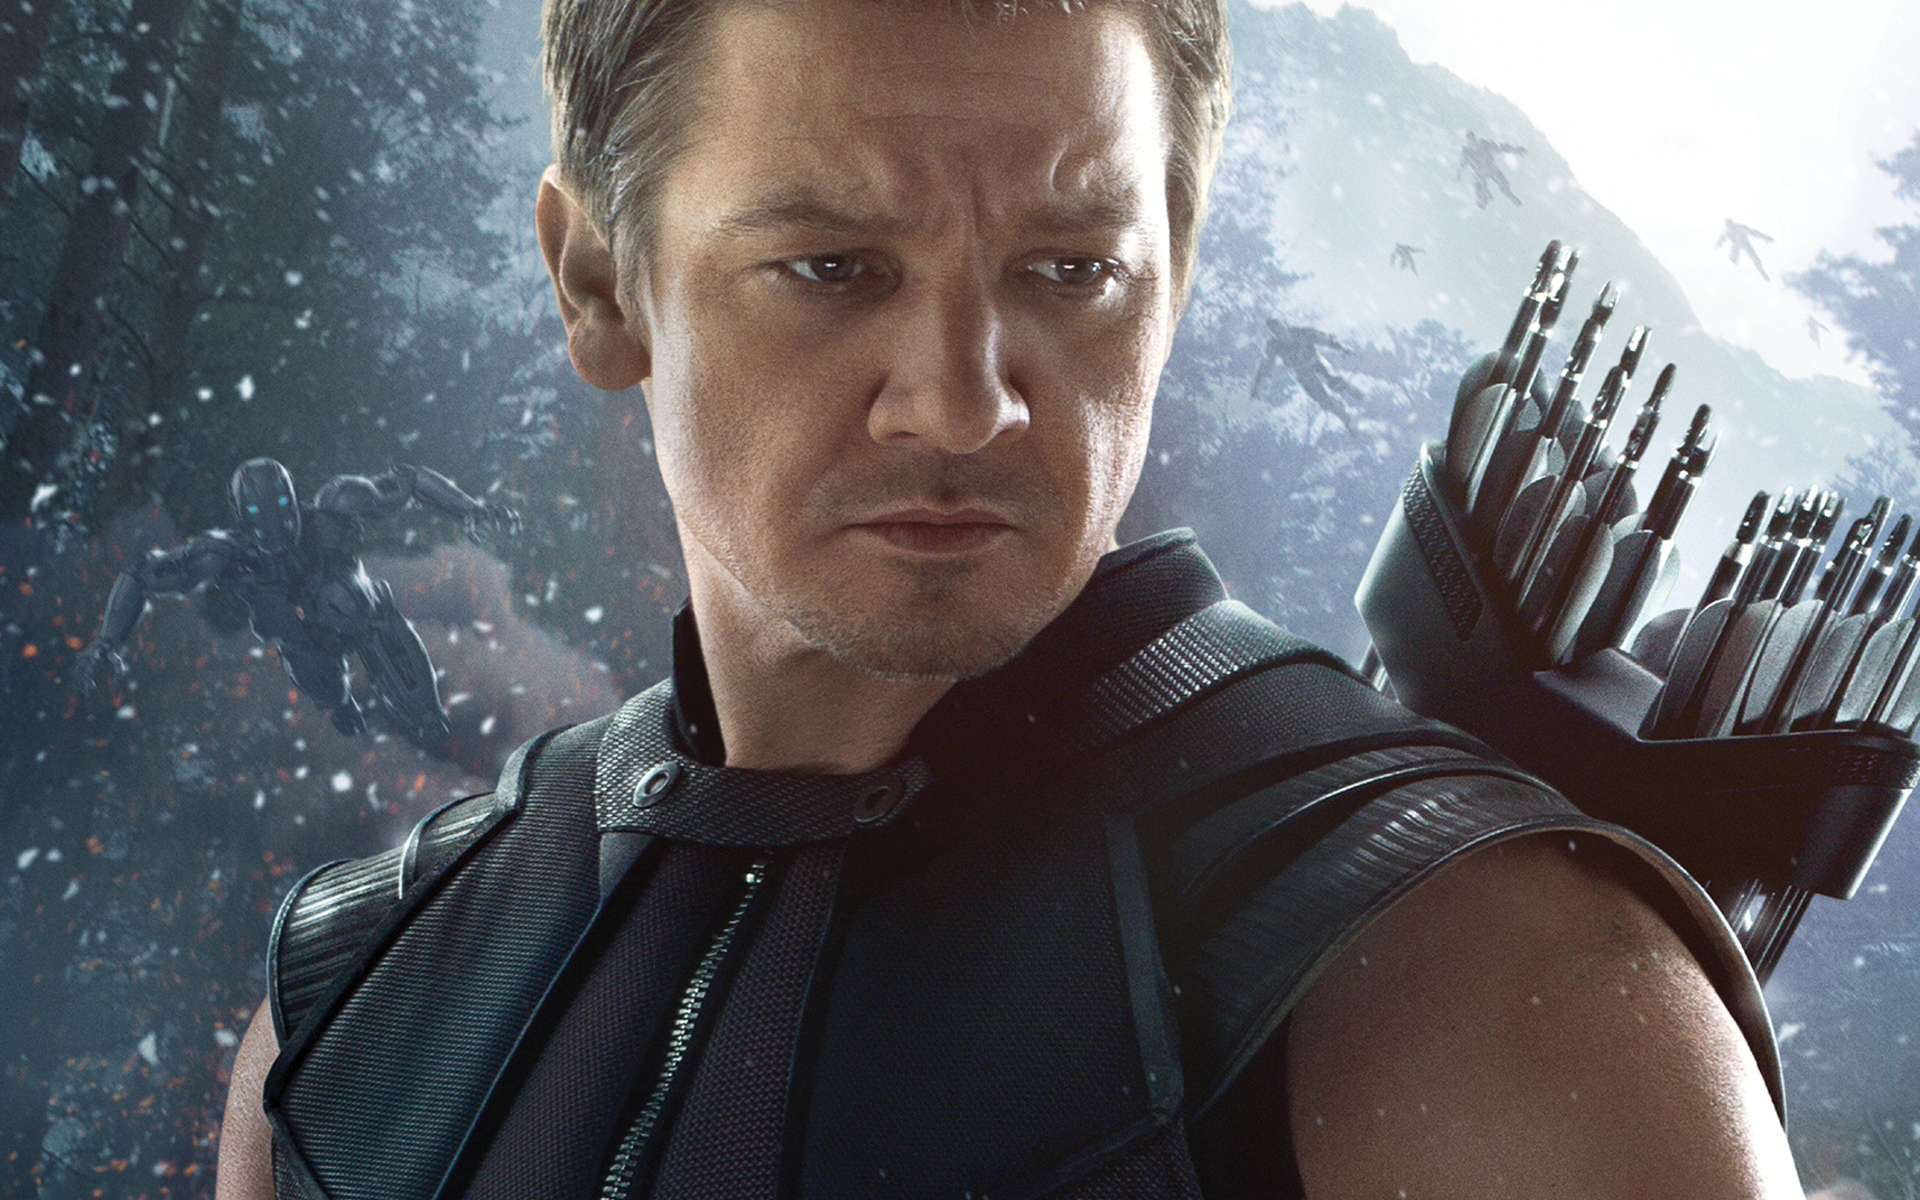 Jeremy Renner Wallpapers High Resolution And Quality Download